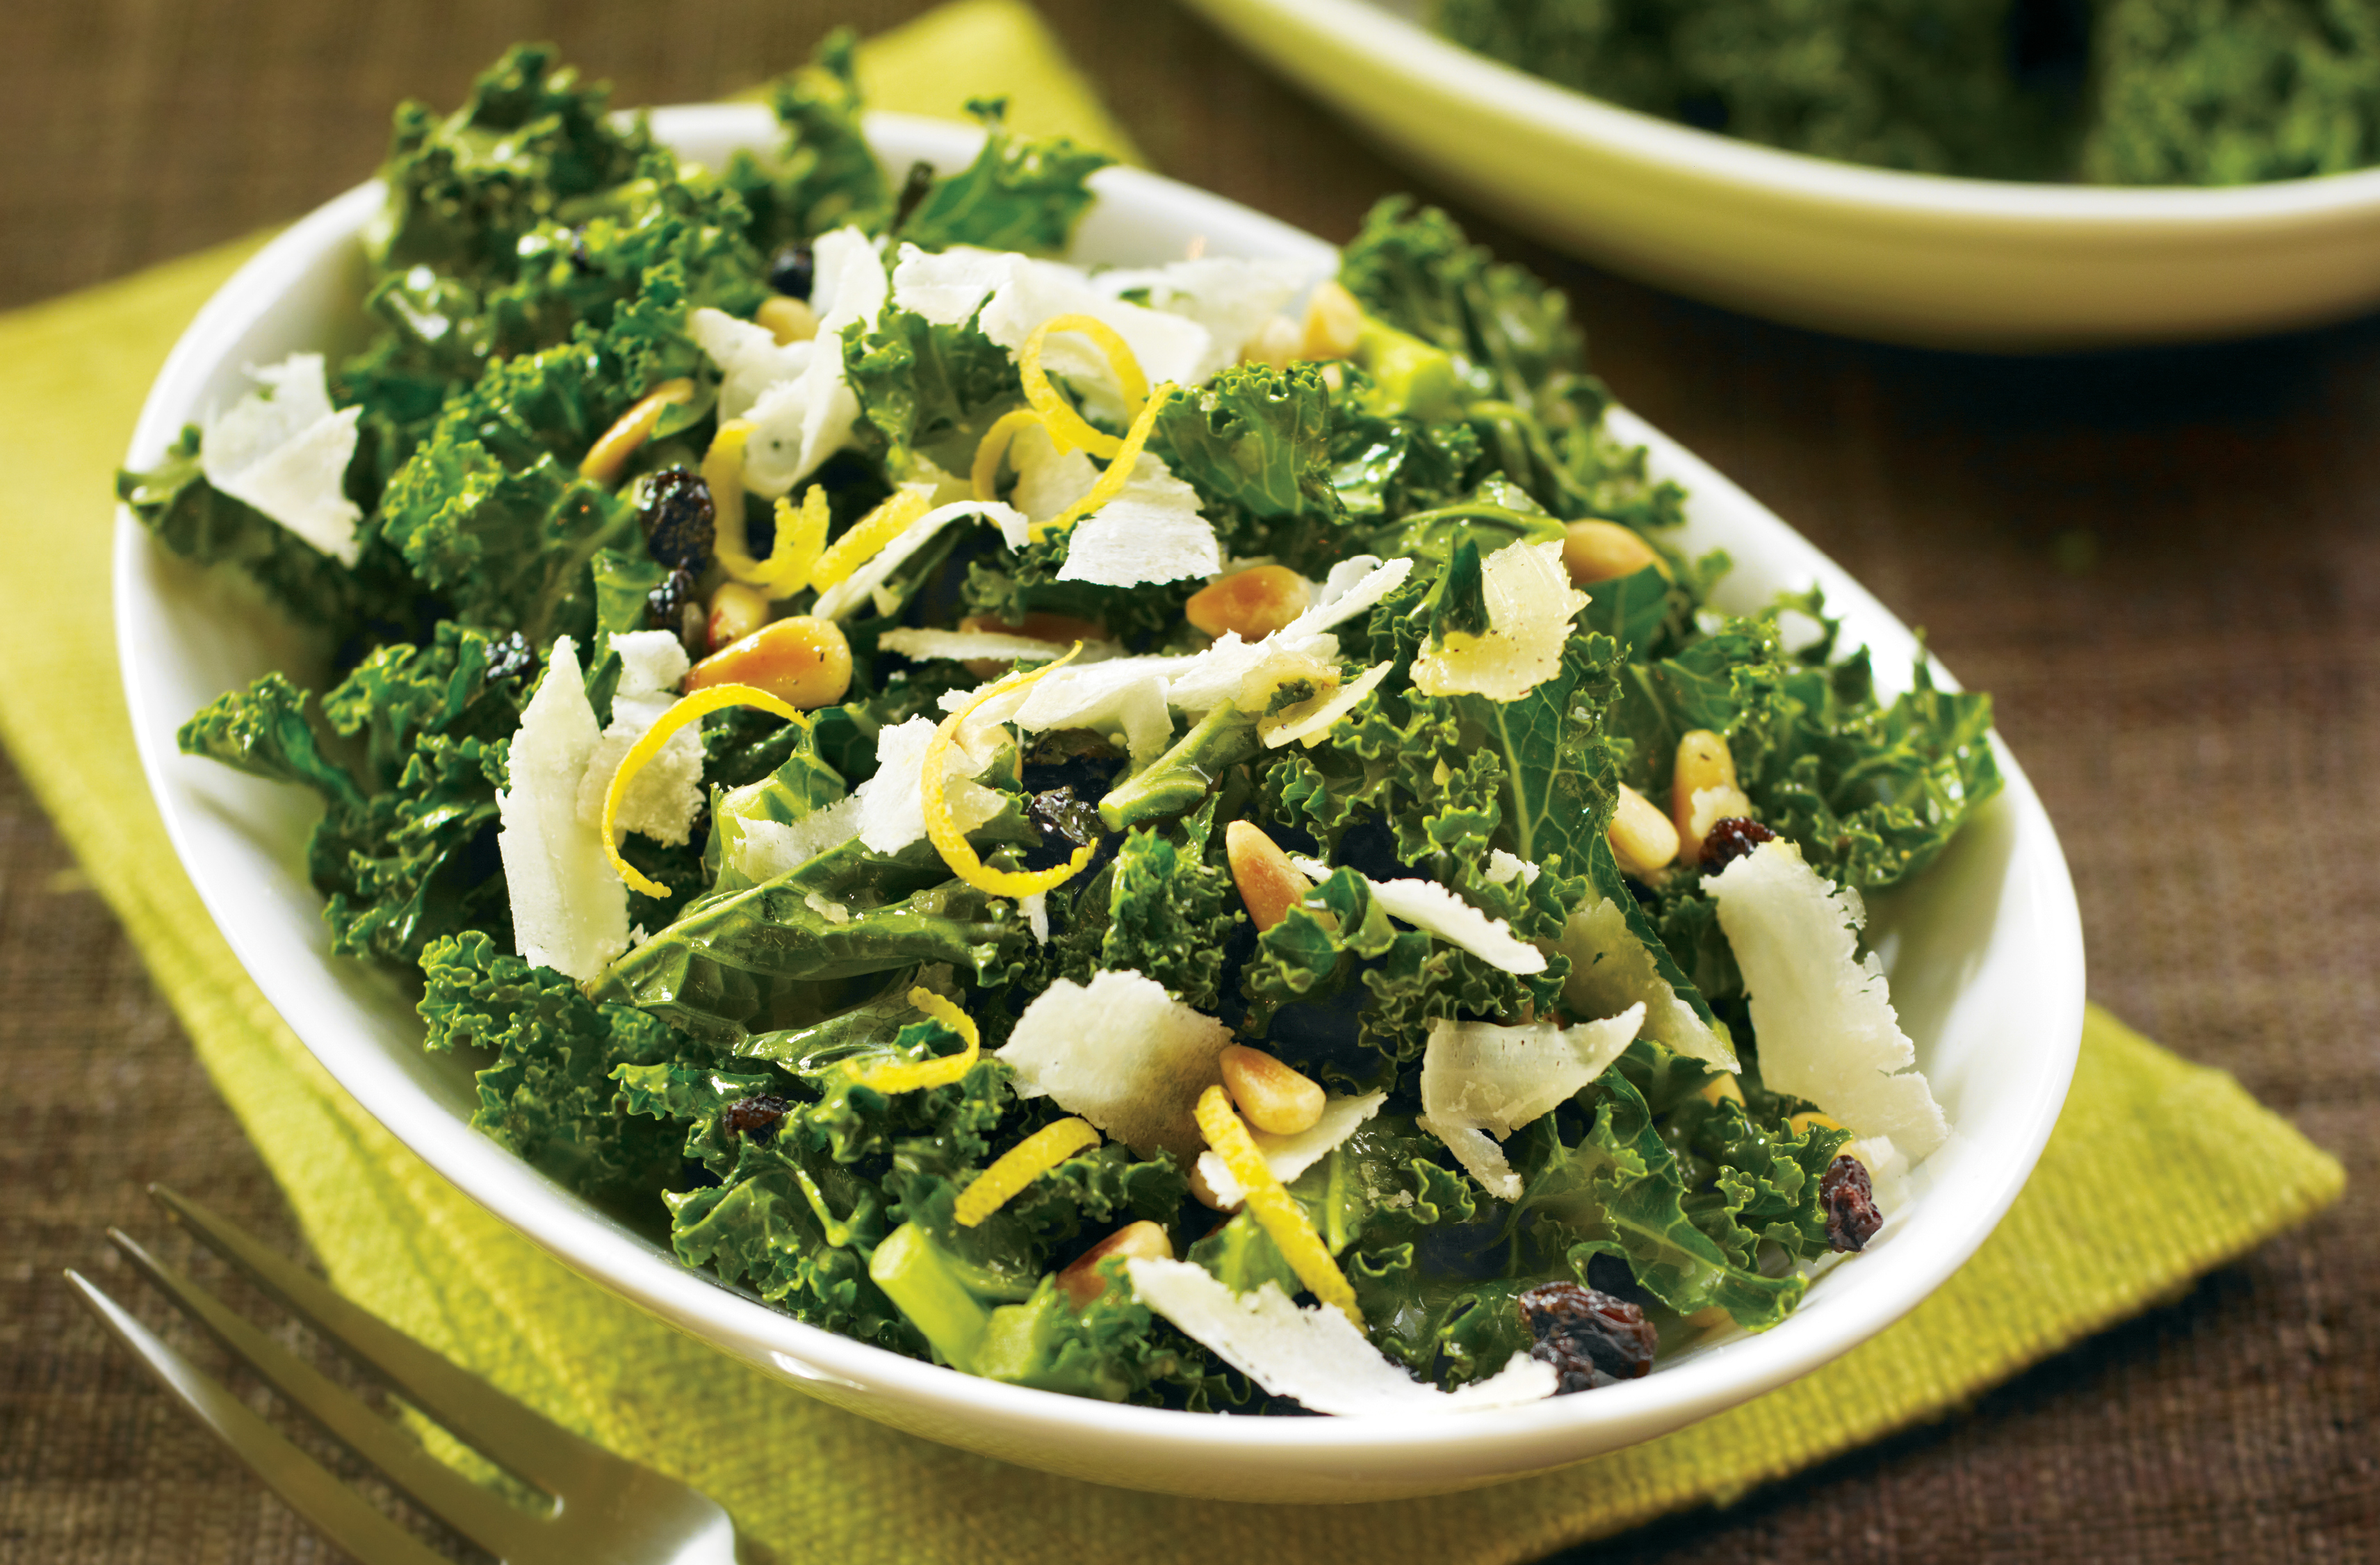 Bowl of kale salad with pine nuts, currants, lemon rind & Pecorino shavings